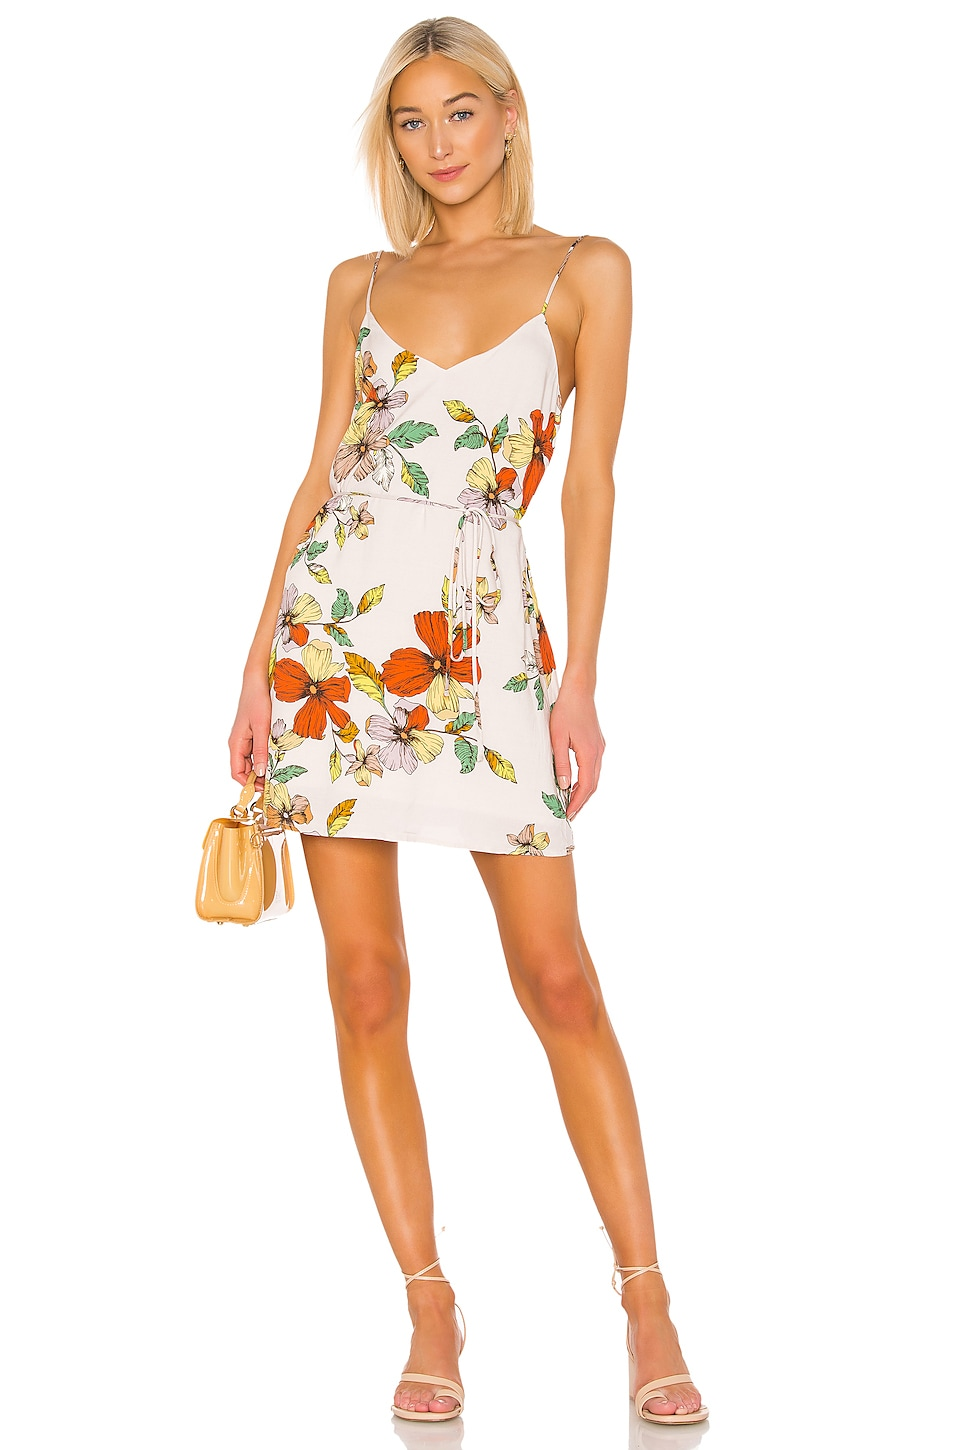 House of Harlow 1960 x REVOLVE Melina Dress in Ivory Floral